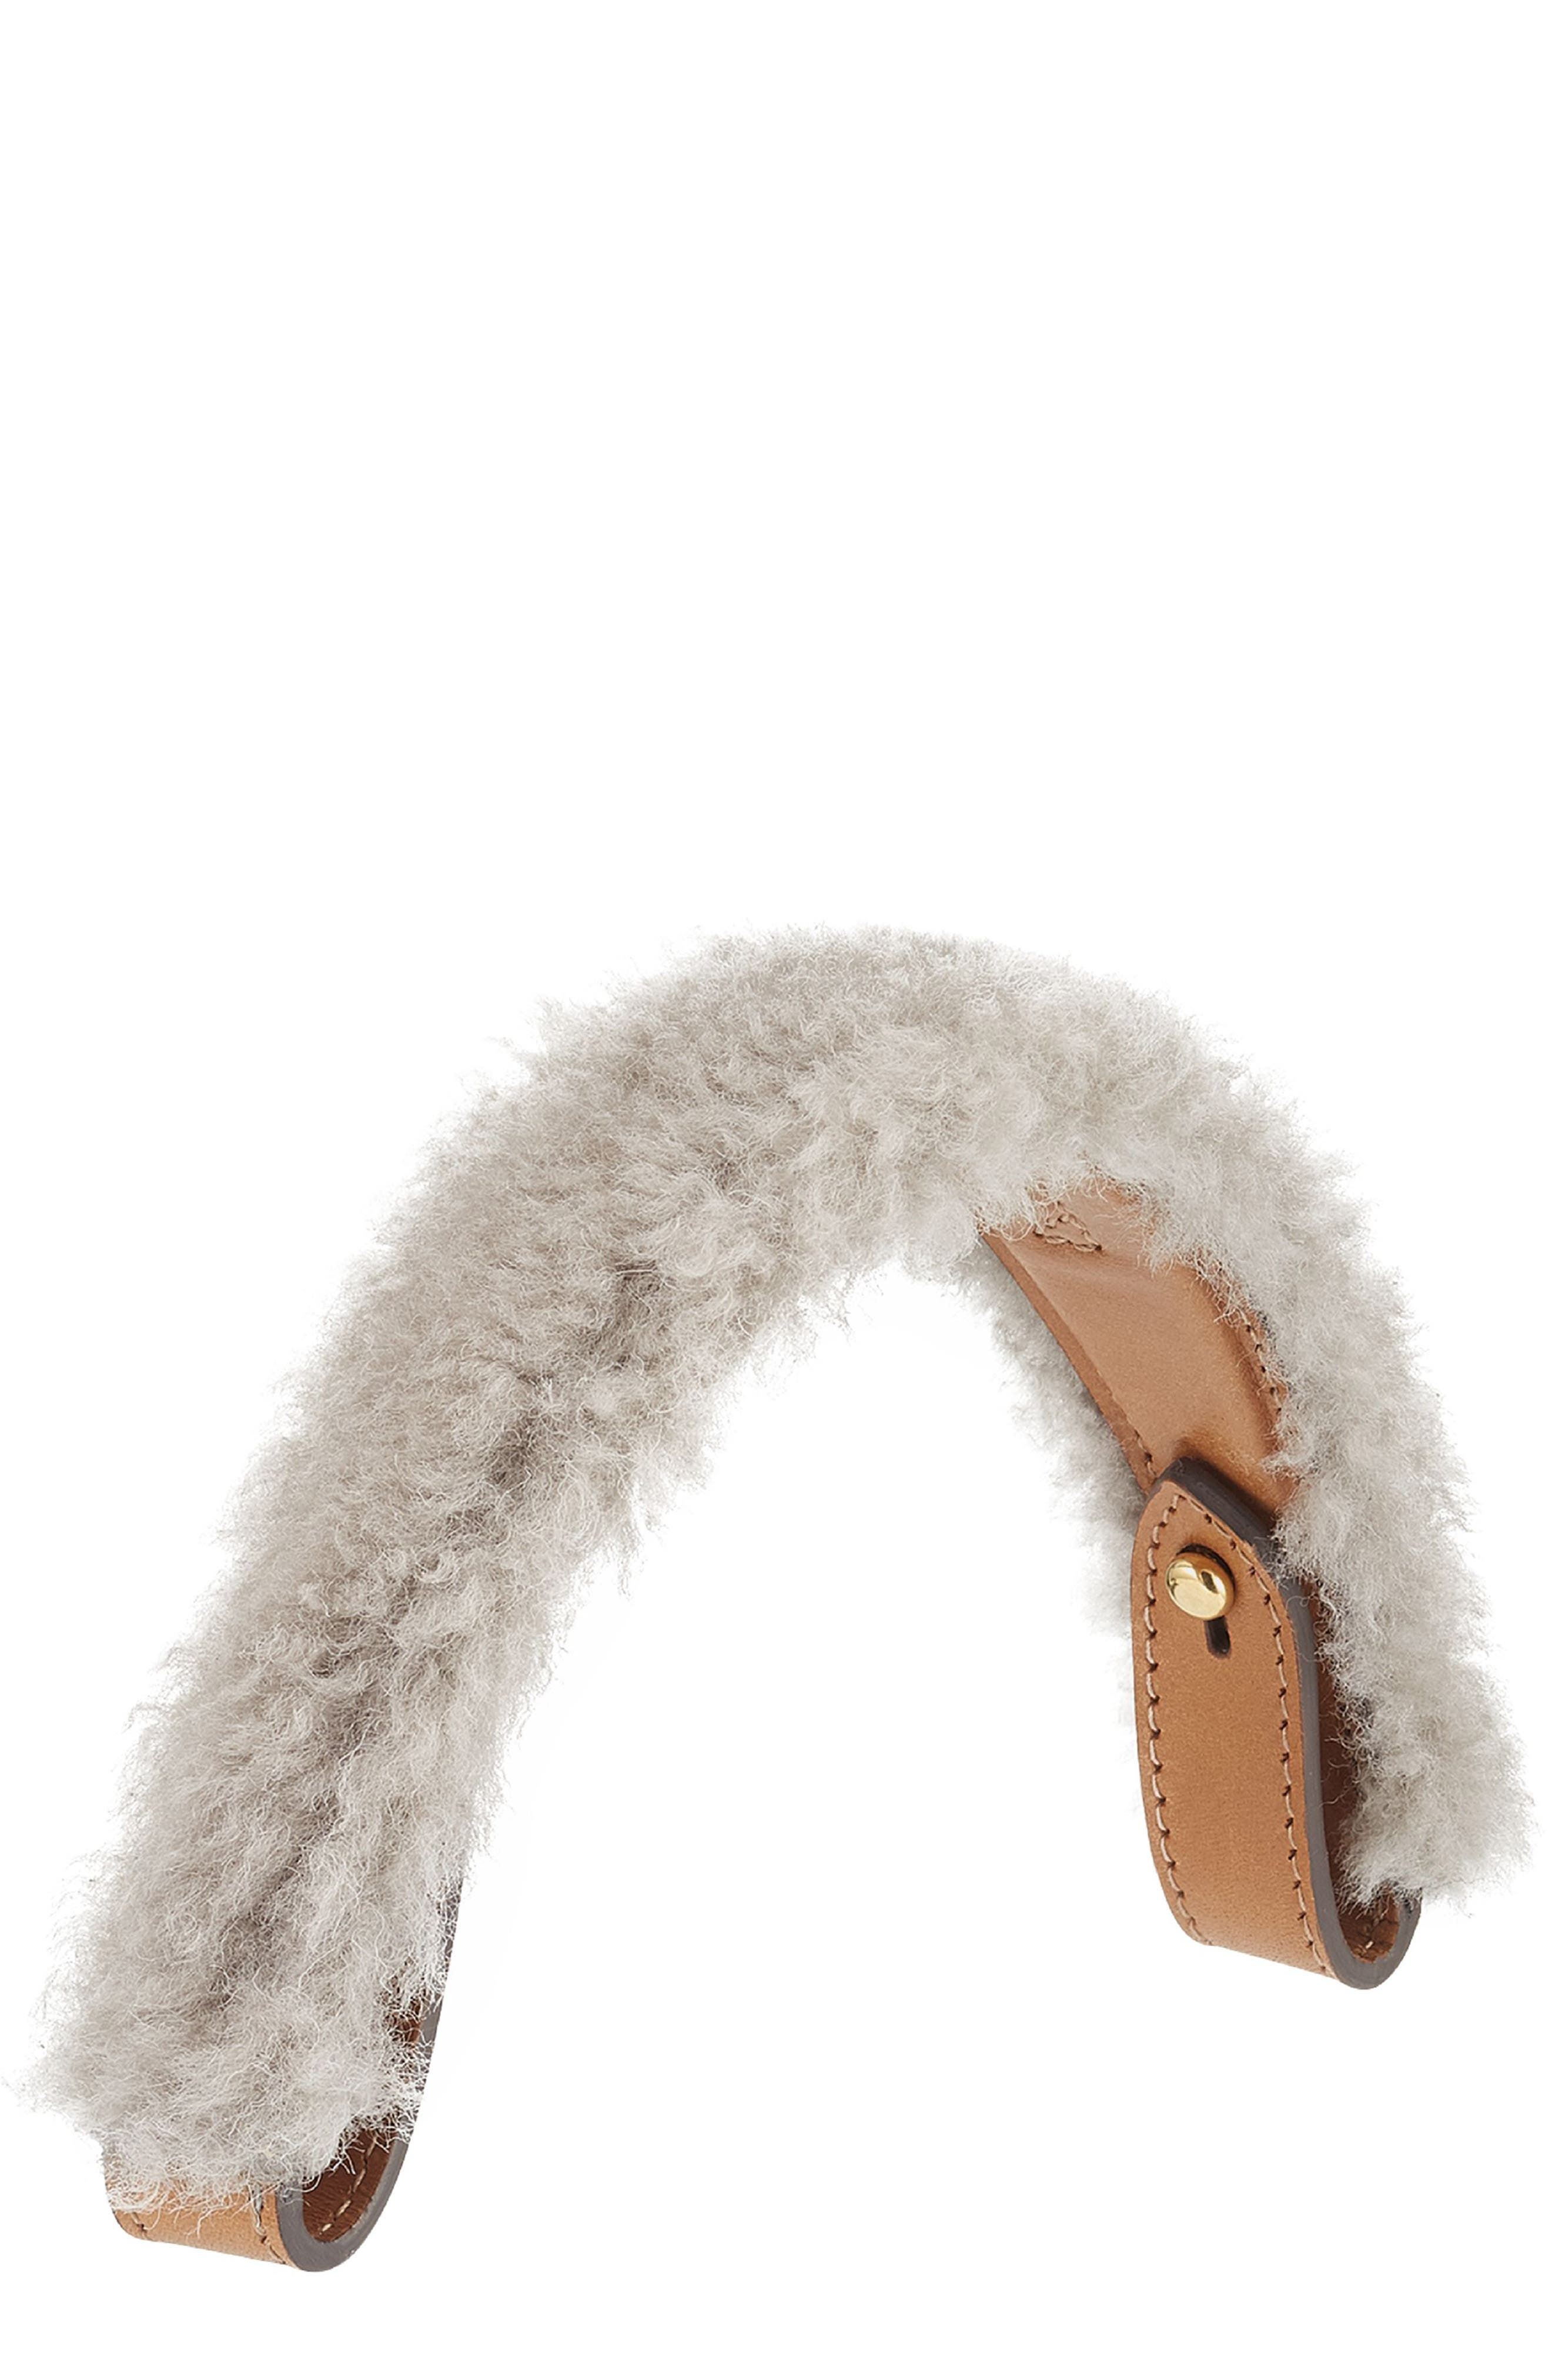 Anya Hindmarch Build a Bag Genuine Shearling & Leather Handle